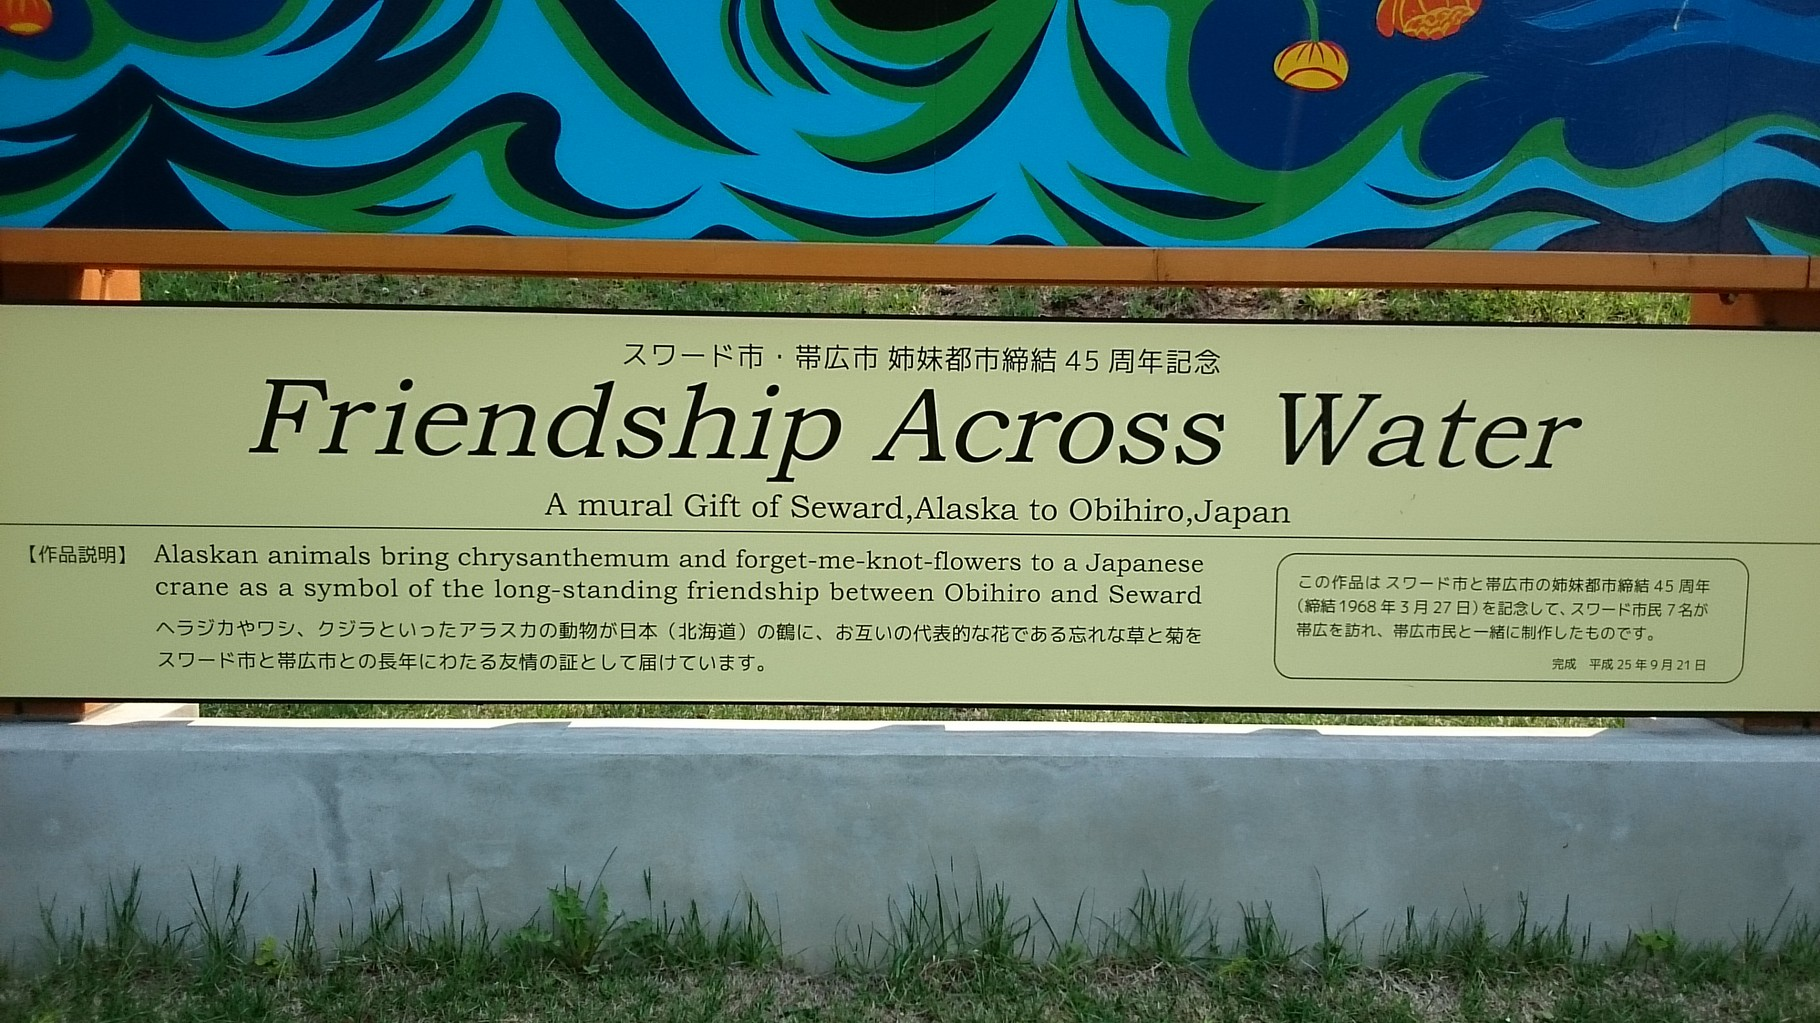 FriendshipAcrossWater02